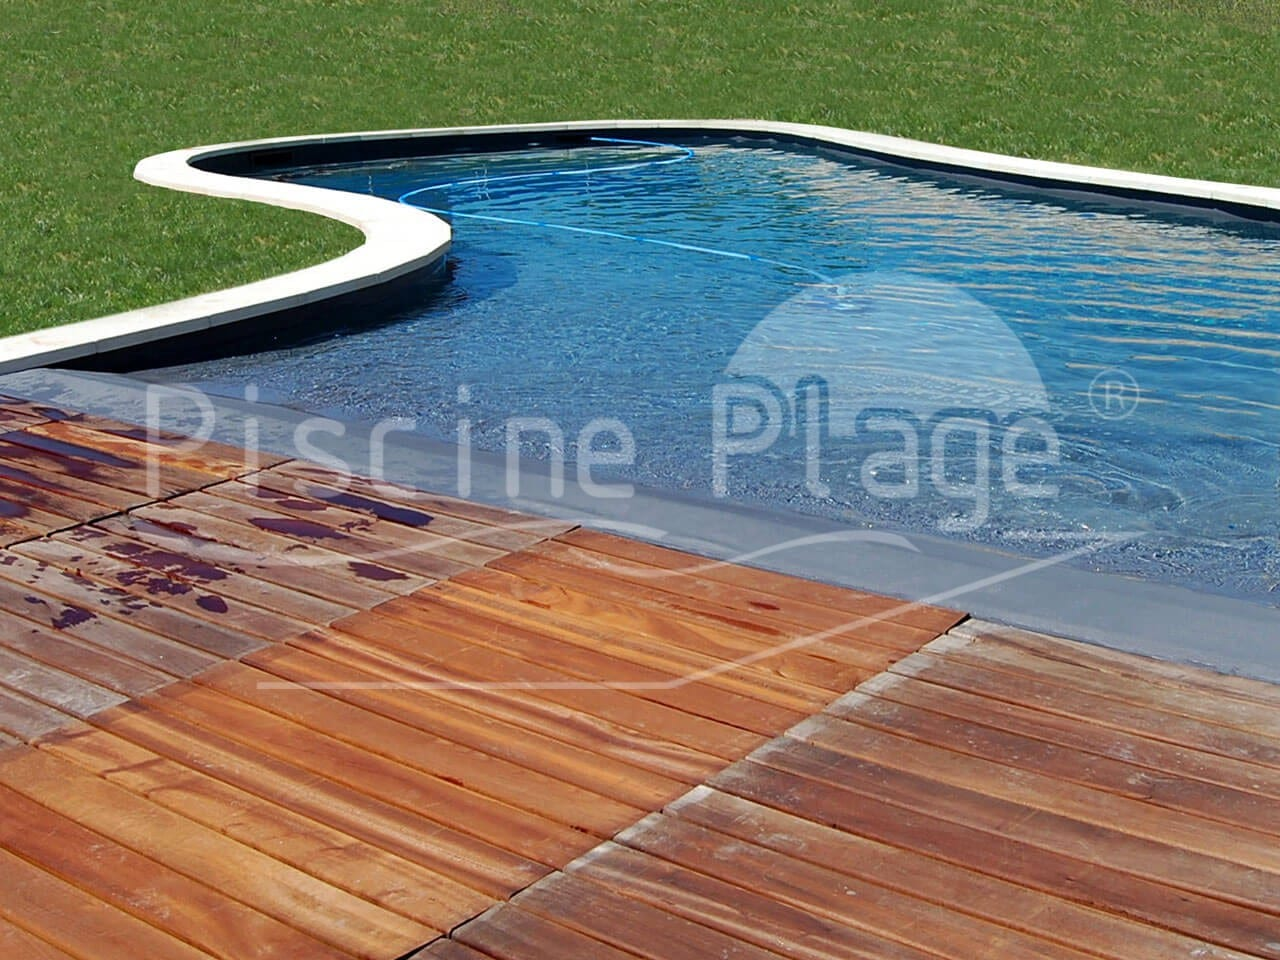 piscine forme libre avec plage piscines de formes libres paysag es o 39 mineraux piscine. Black Bedroom Furniture Sets. Home Design Ideas